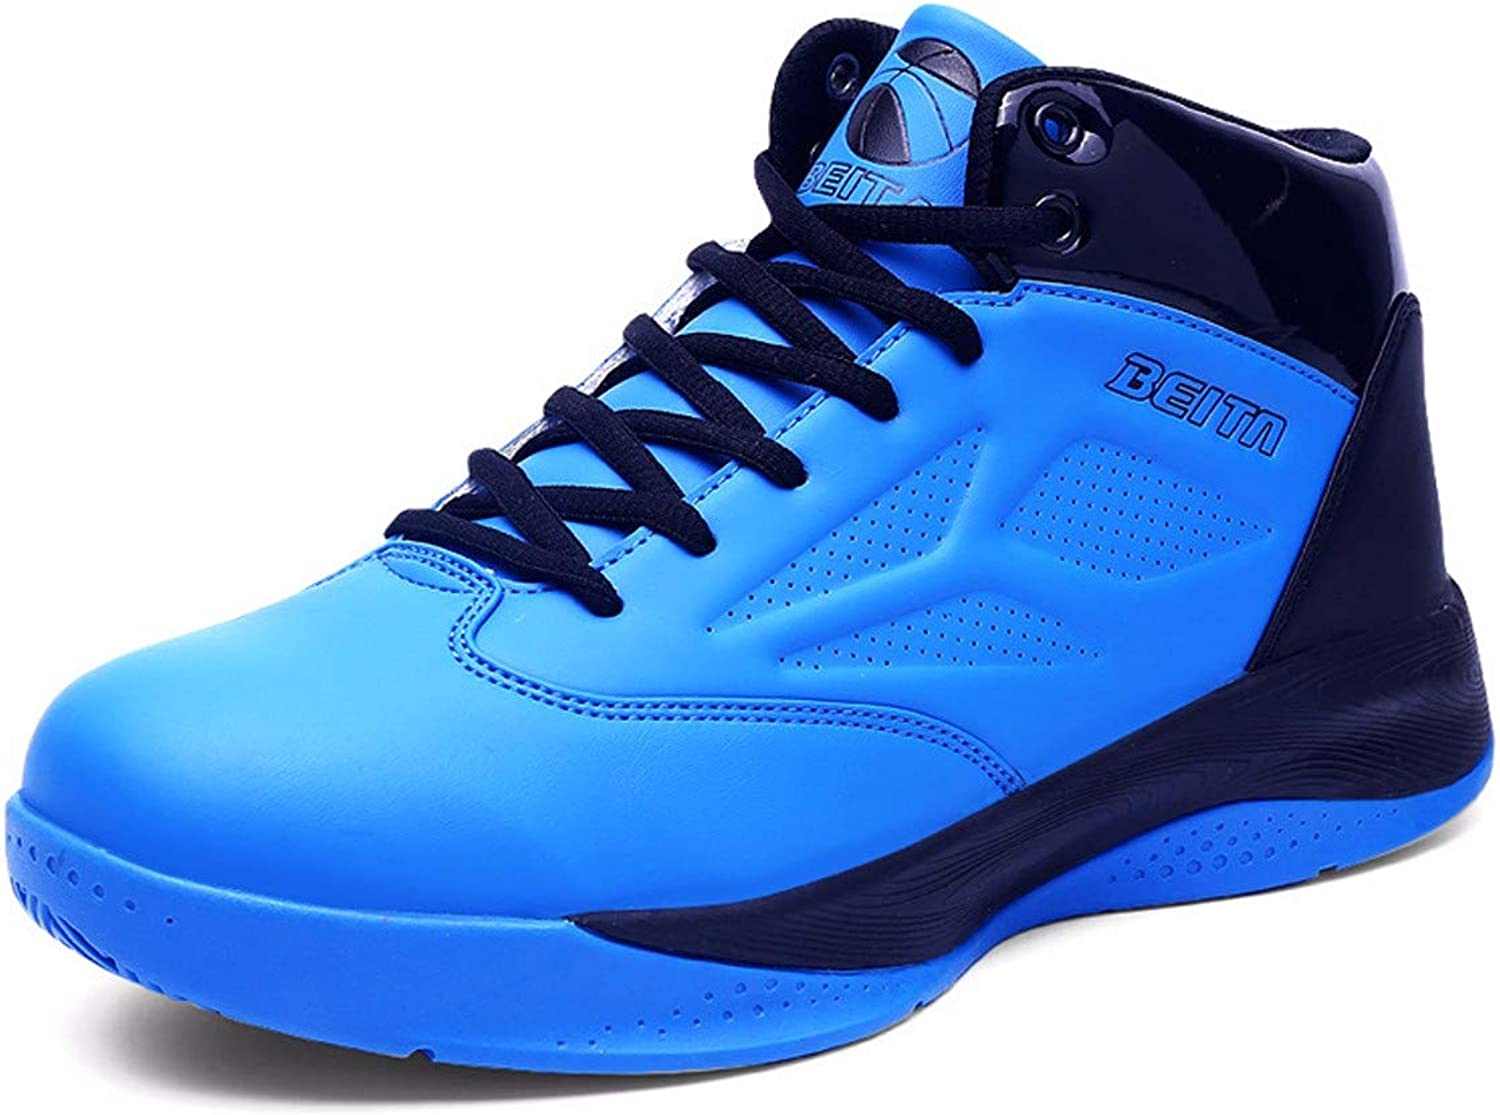 KMJBS-Spring And Summer Basketball shoes Men High Wear Anti Slip Comfort Breathable Students